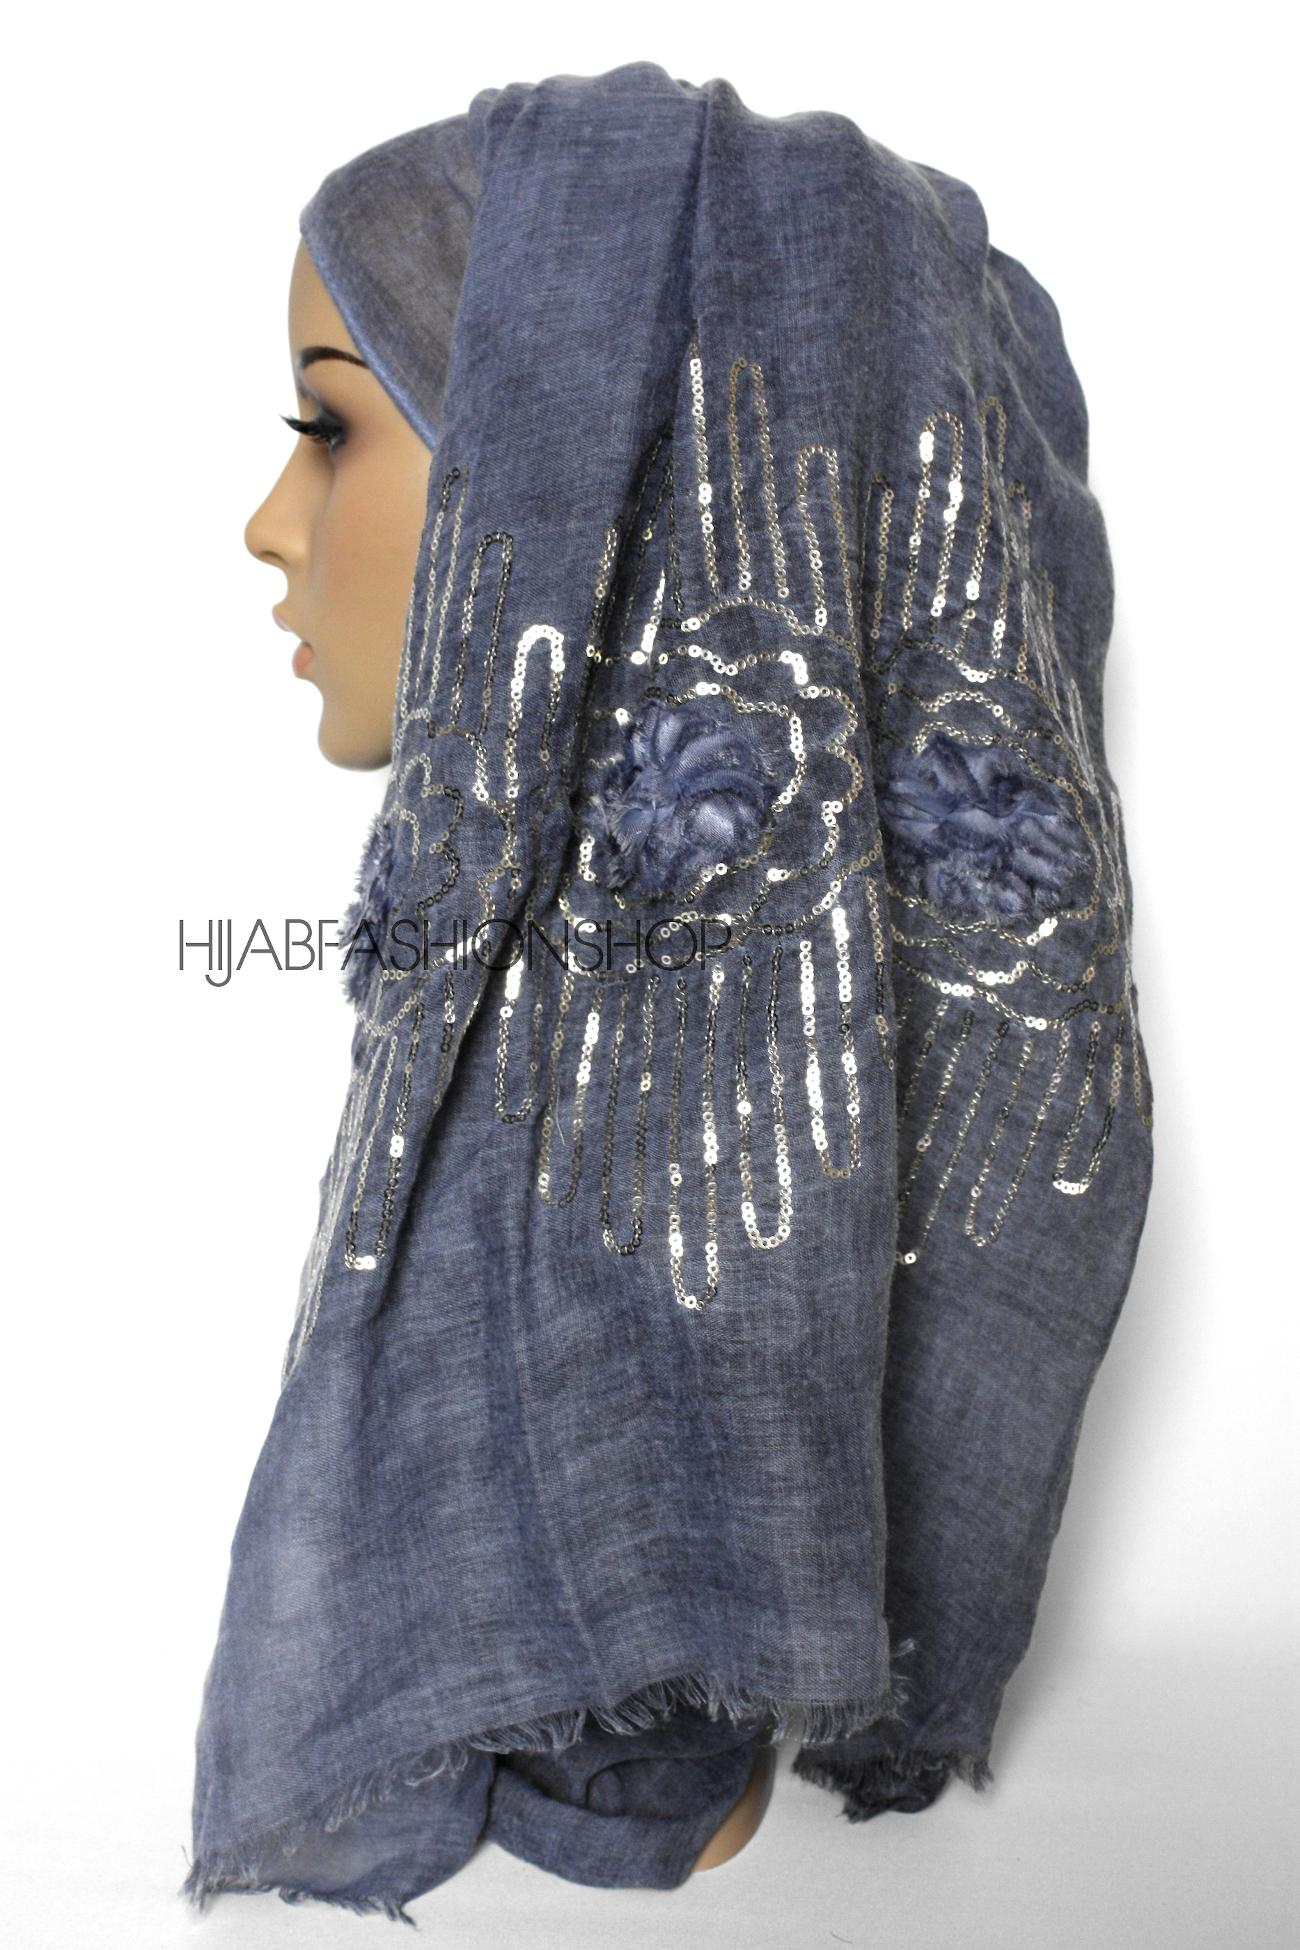 denim linen look hijab with frayed flower detail and gold sequins